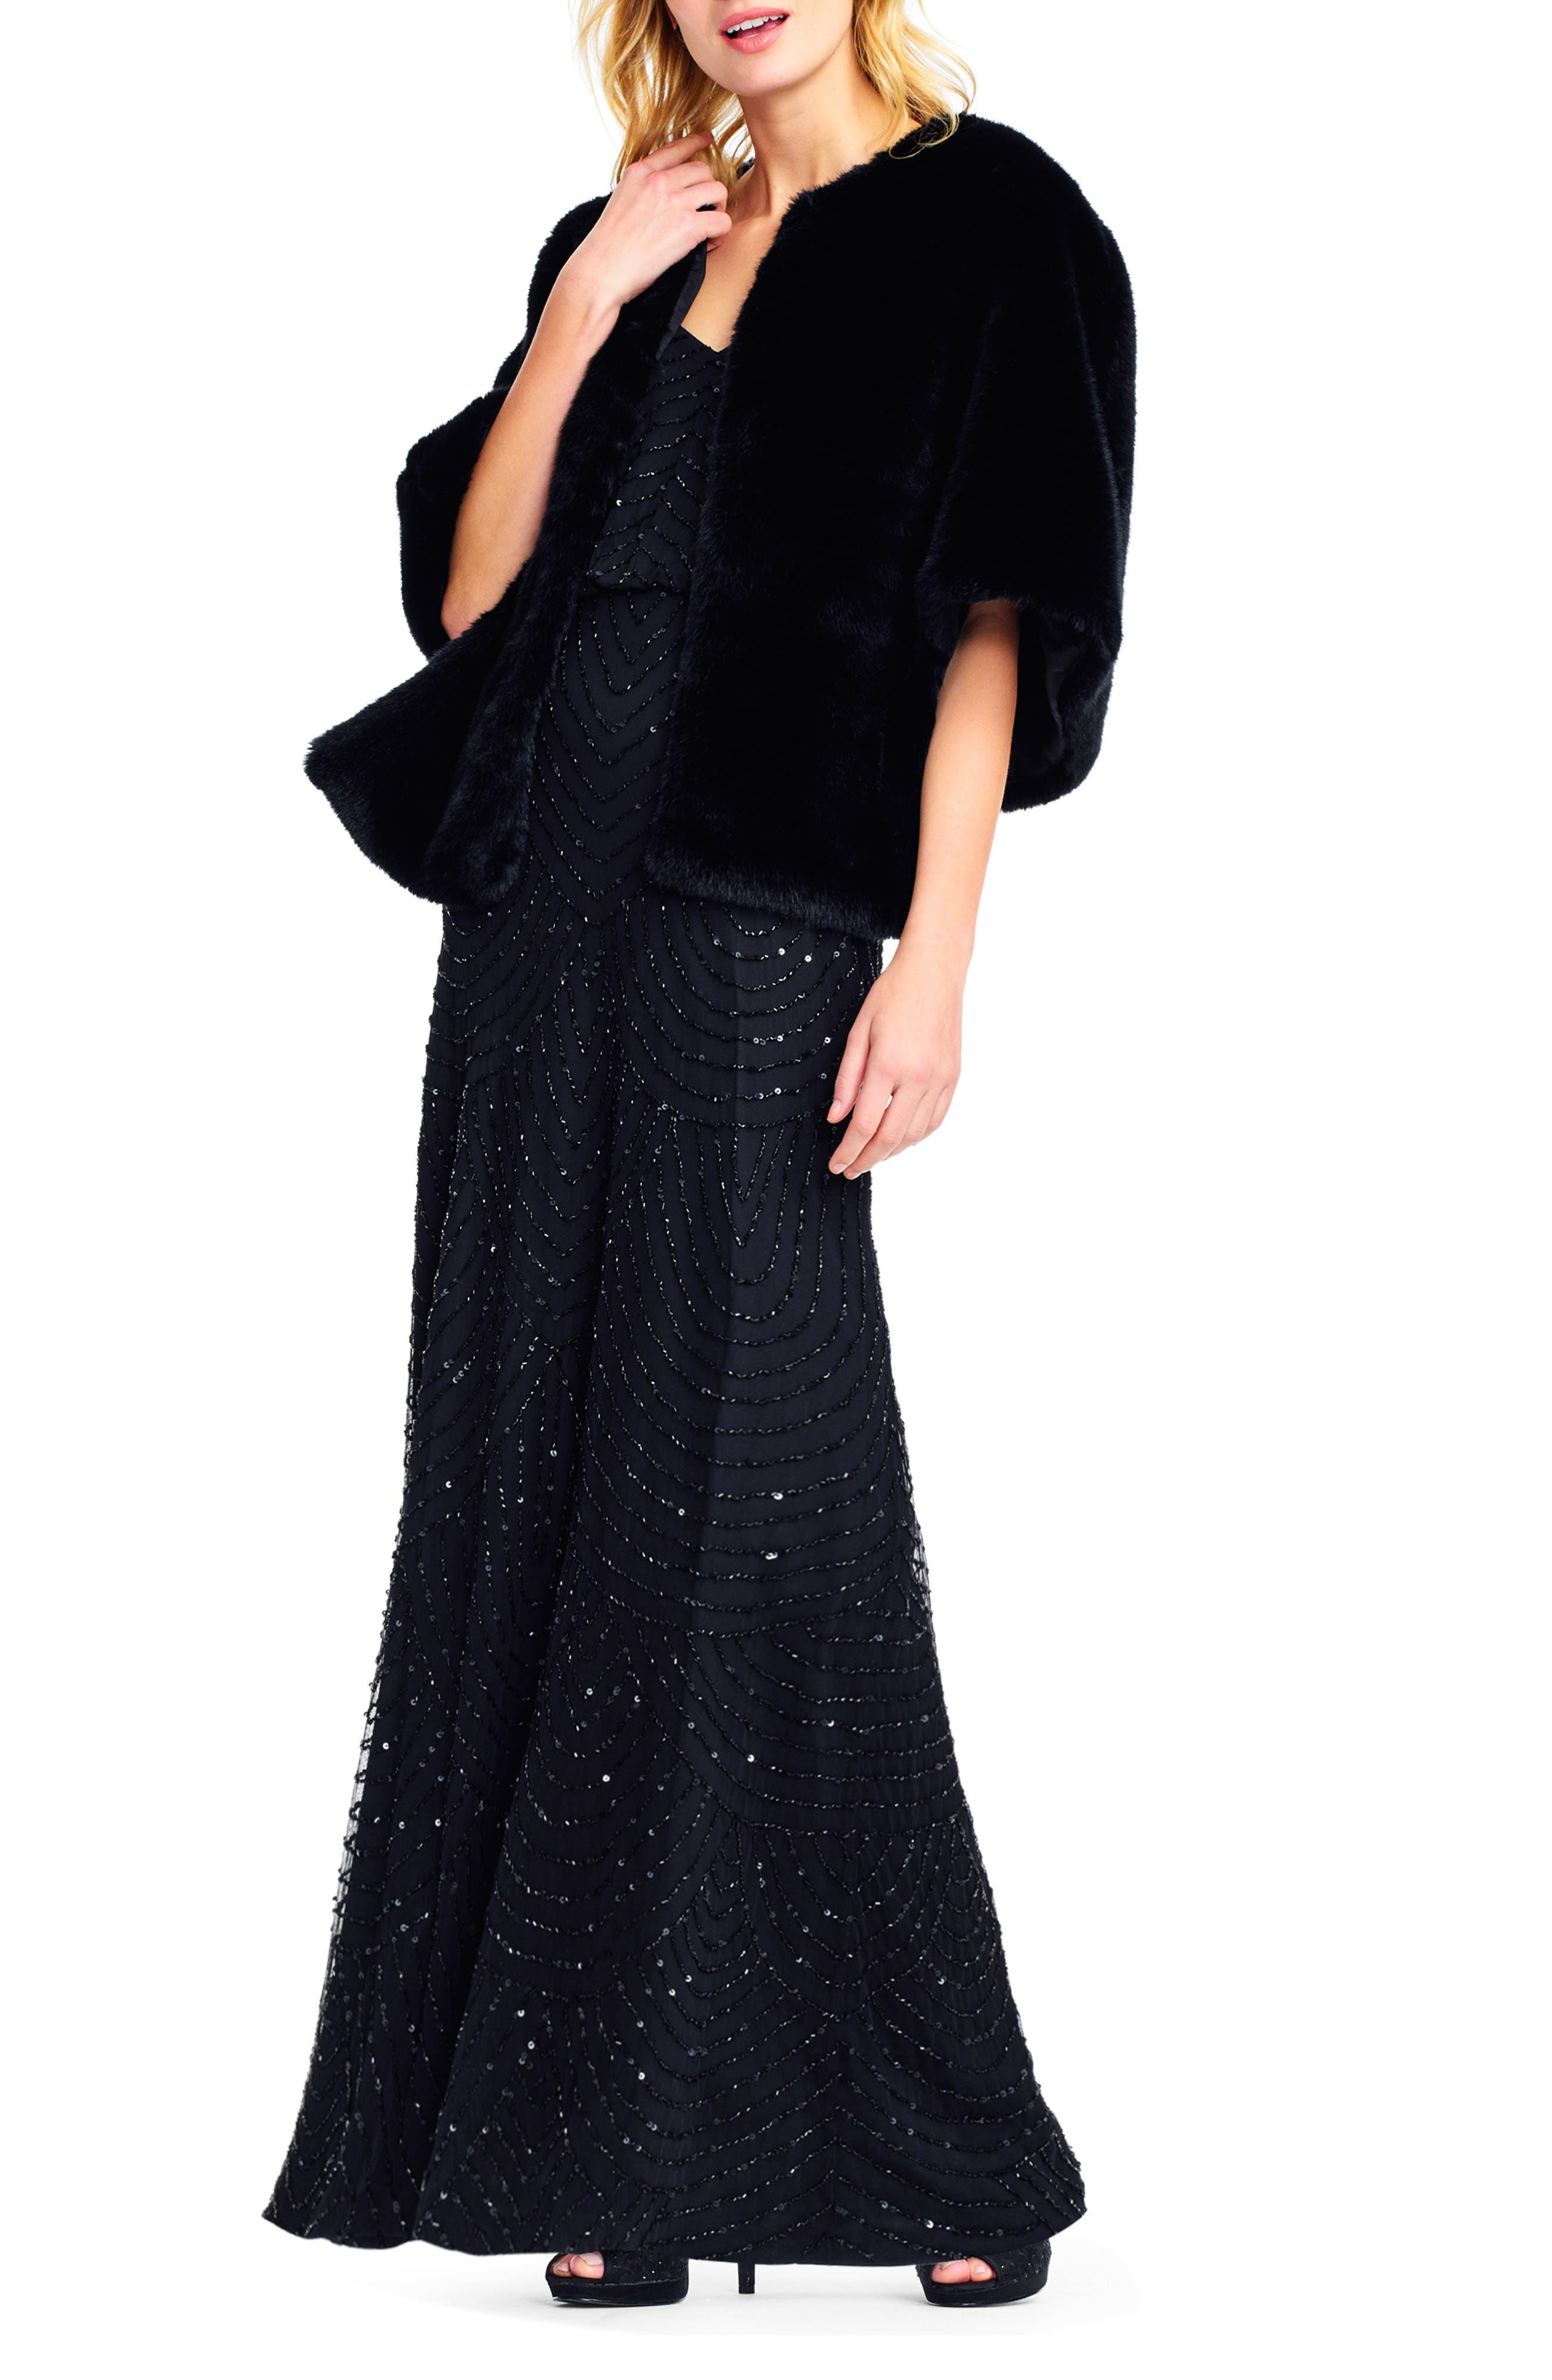 1930s Evening Dresses | Old Hollywood Silver Screen Dresses Womens Adrianna Papell Faux Fur Jacket Size Small - Black $149.00 AT vintagedancer.com